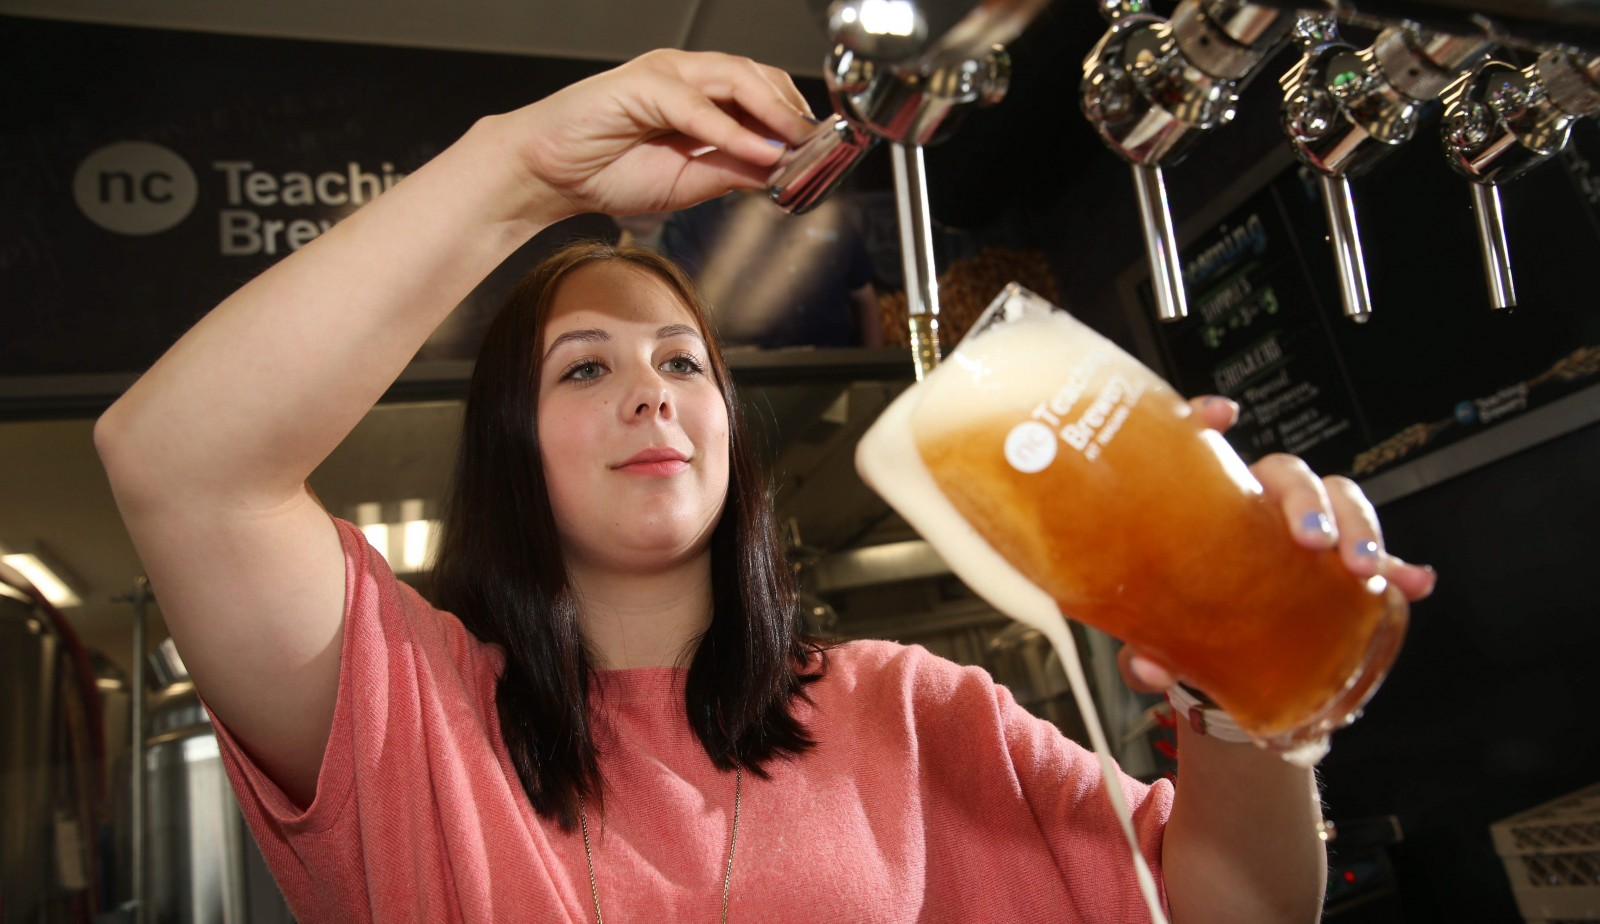 Student Karen Belfry pours one of Niagara College Teaching Brewery's house brands, which include the flagship Butler's Bitters, at the brewery's retail outlet, run by students.